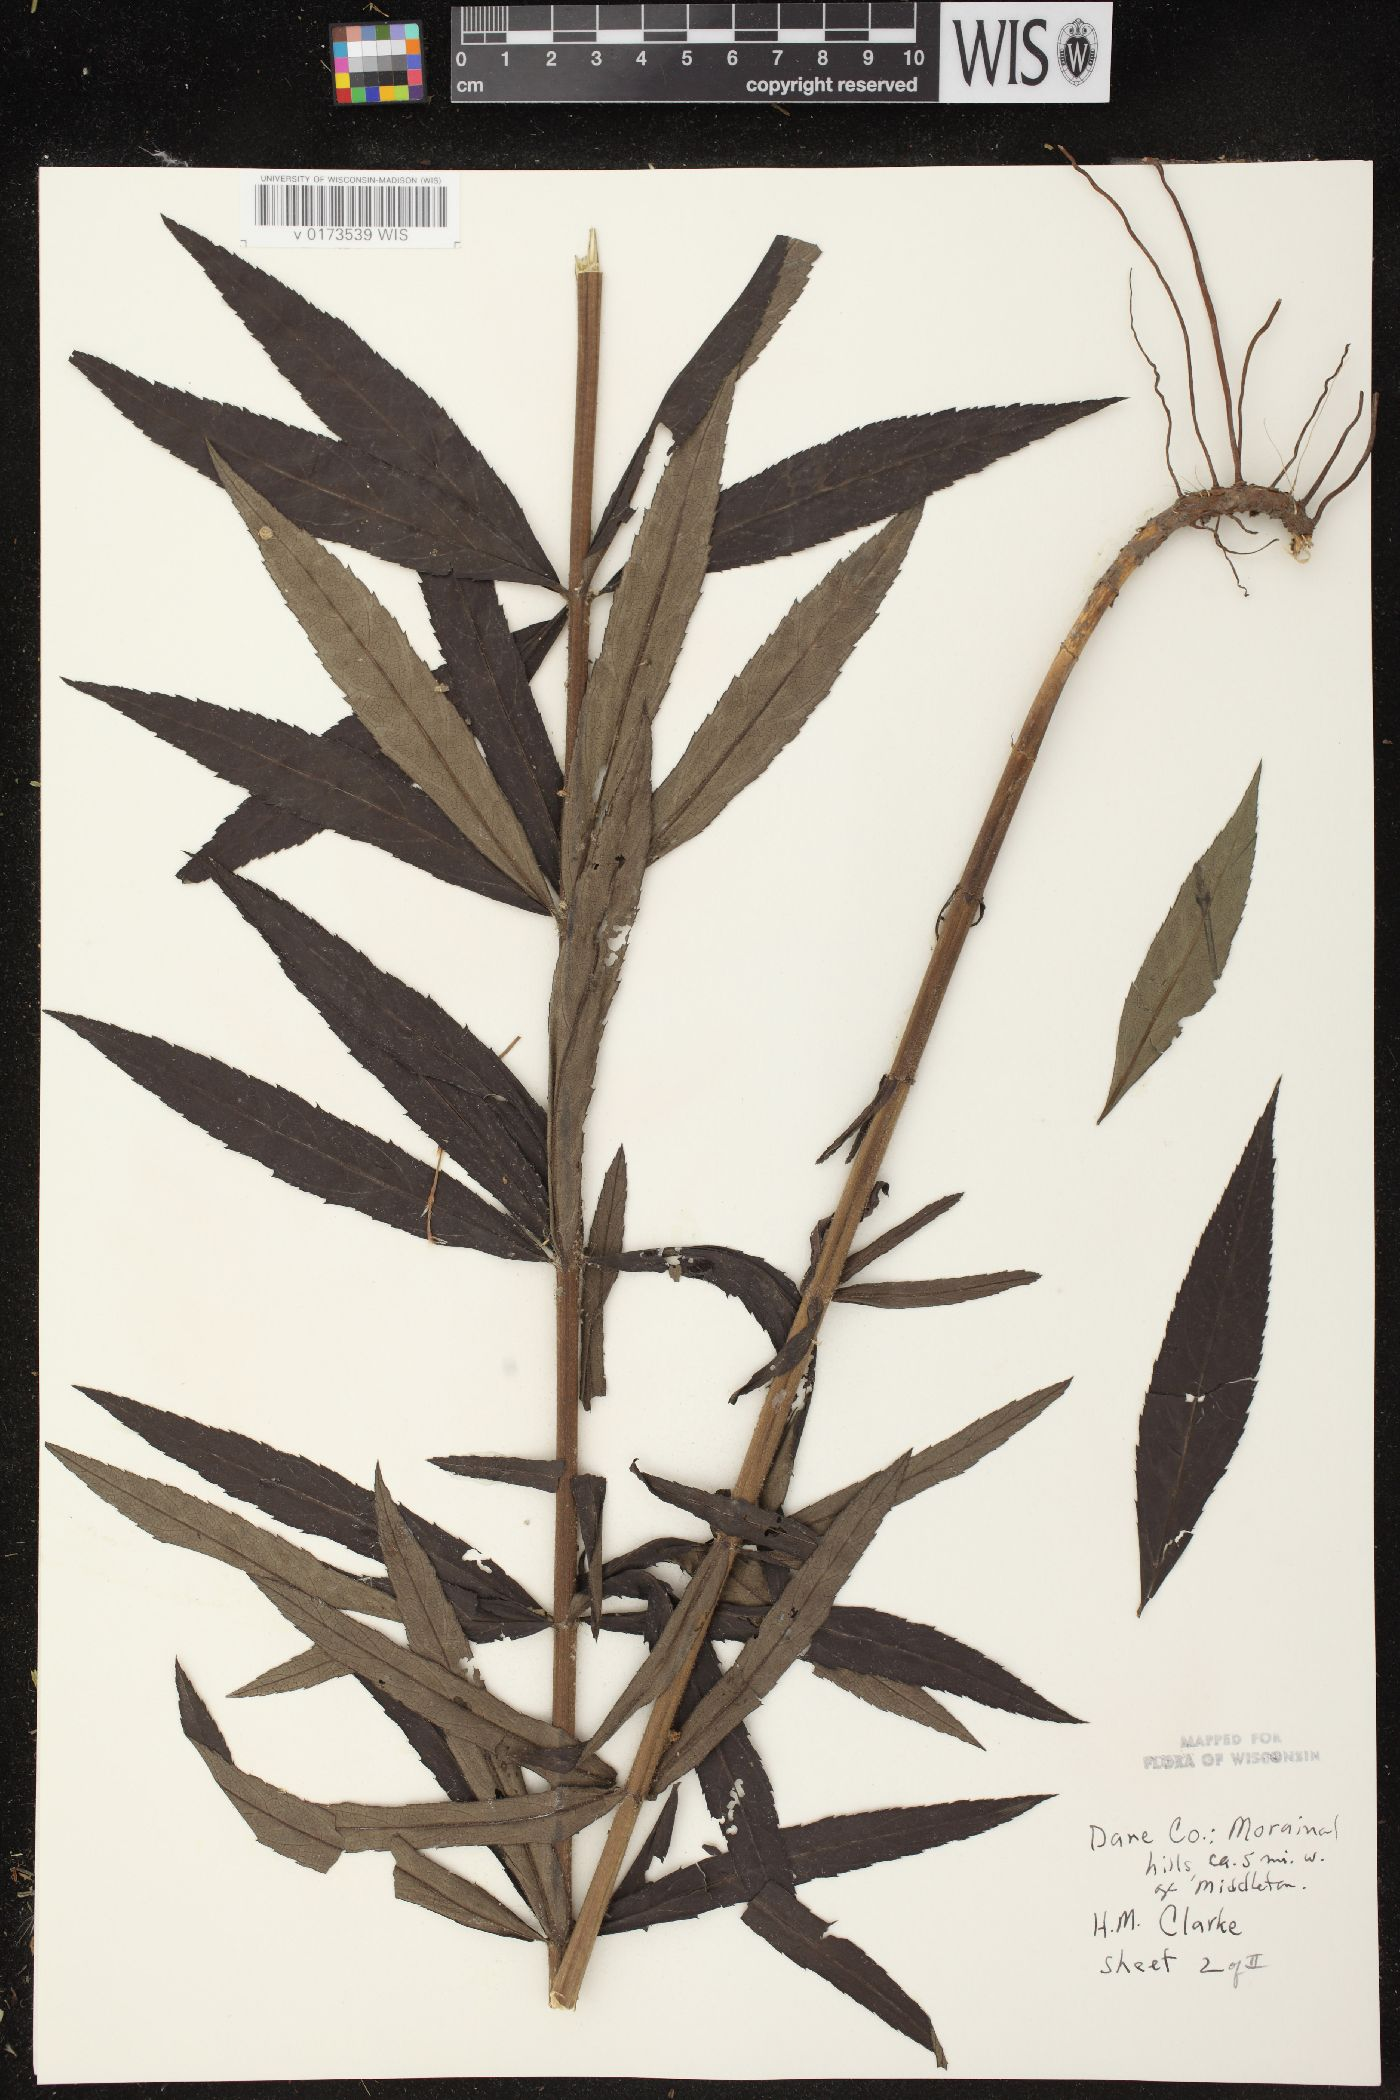 Veronicastrum image